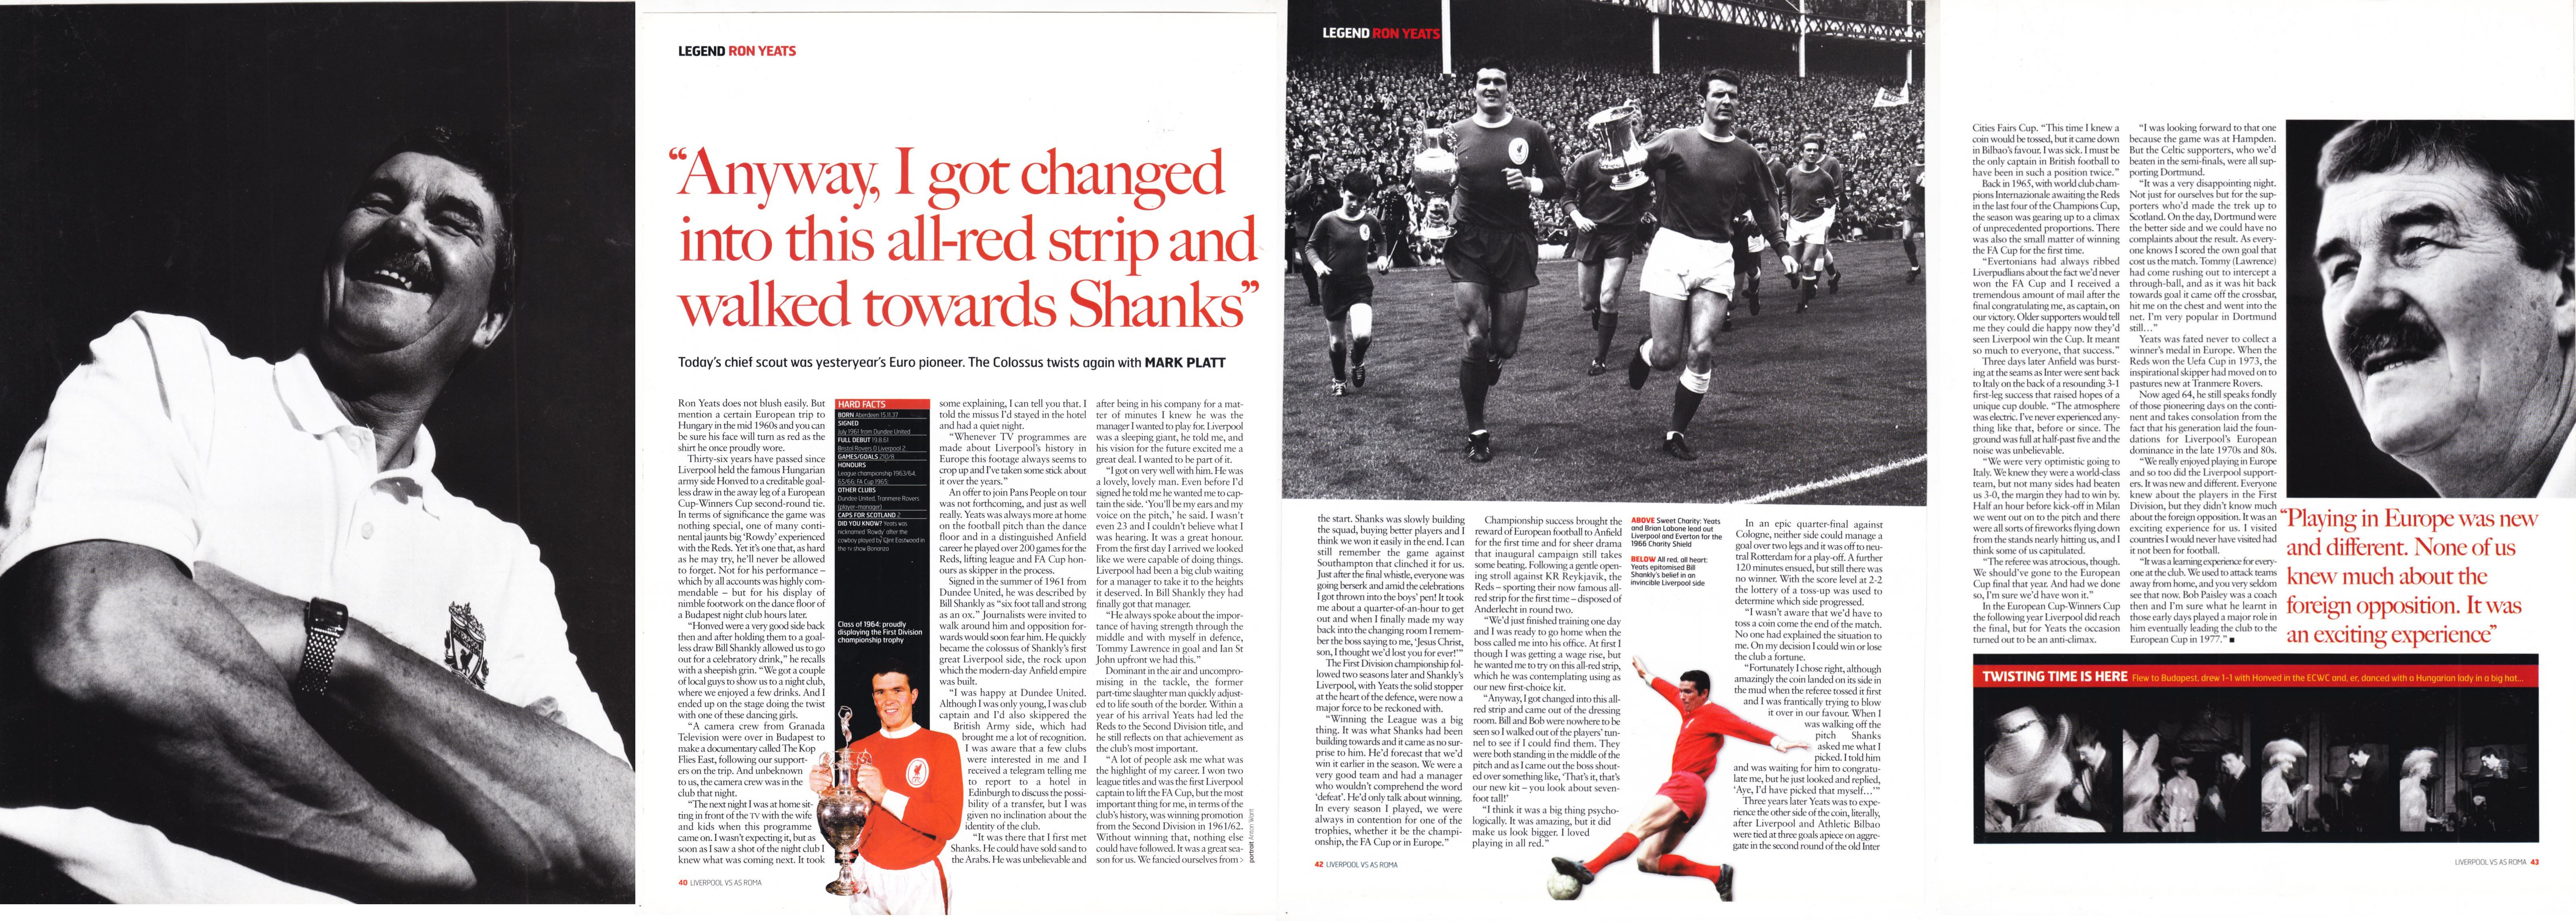 Official Matchday Magazine interview 2000/01